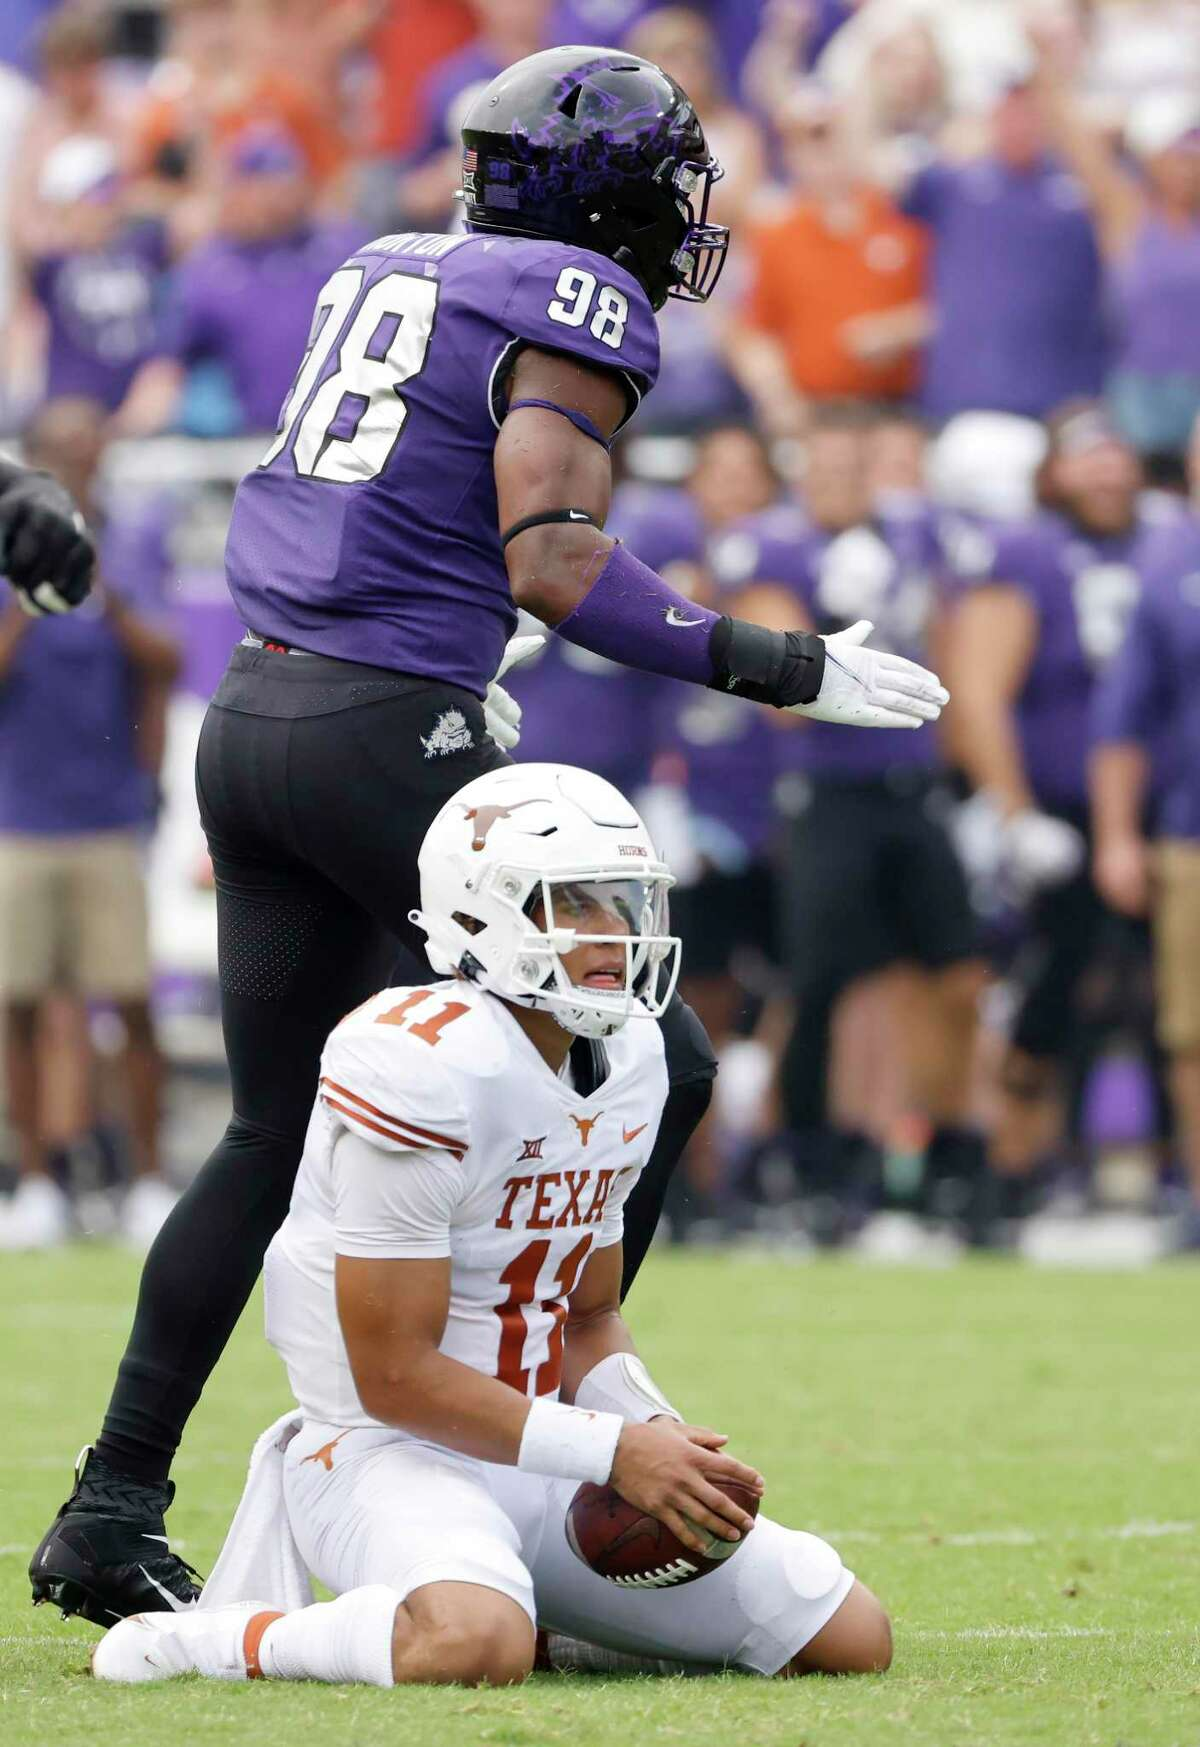 TCU defensive end Dylan Horton (98) reacts after Texas quarterback Casey Thompson (11) was sacked during the first half of an NCAA college football game Saturday, Oct. 2, 2021, in Fort Worth, Texas. (AP Photo/Ron Jenkins)